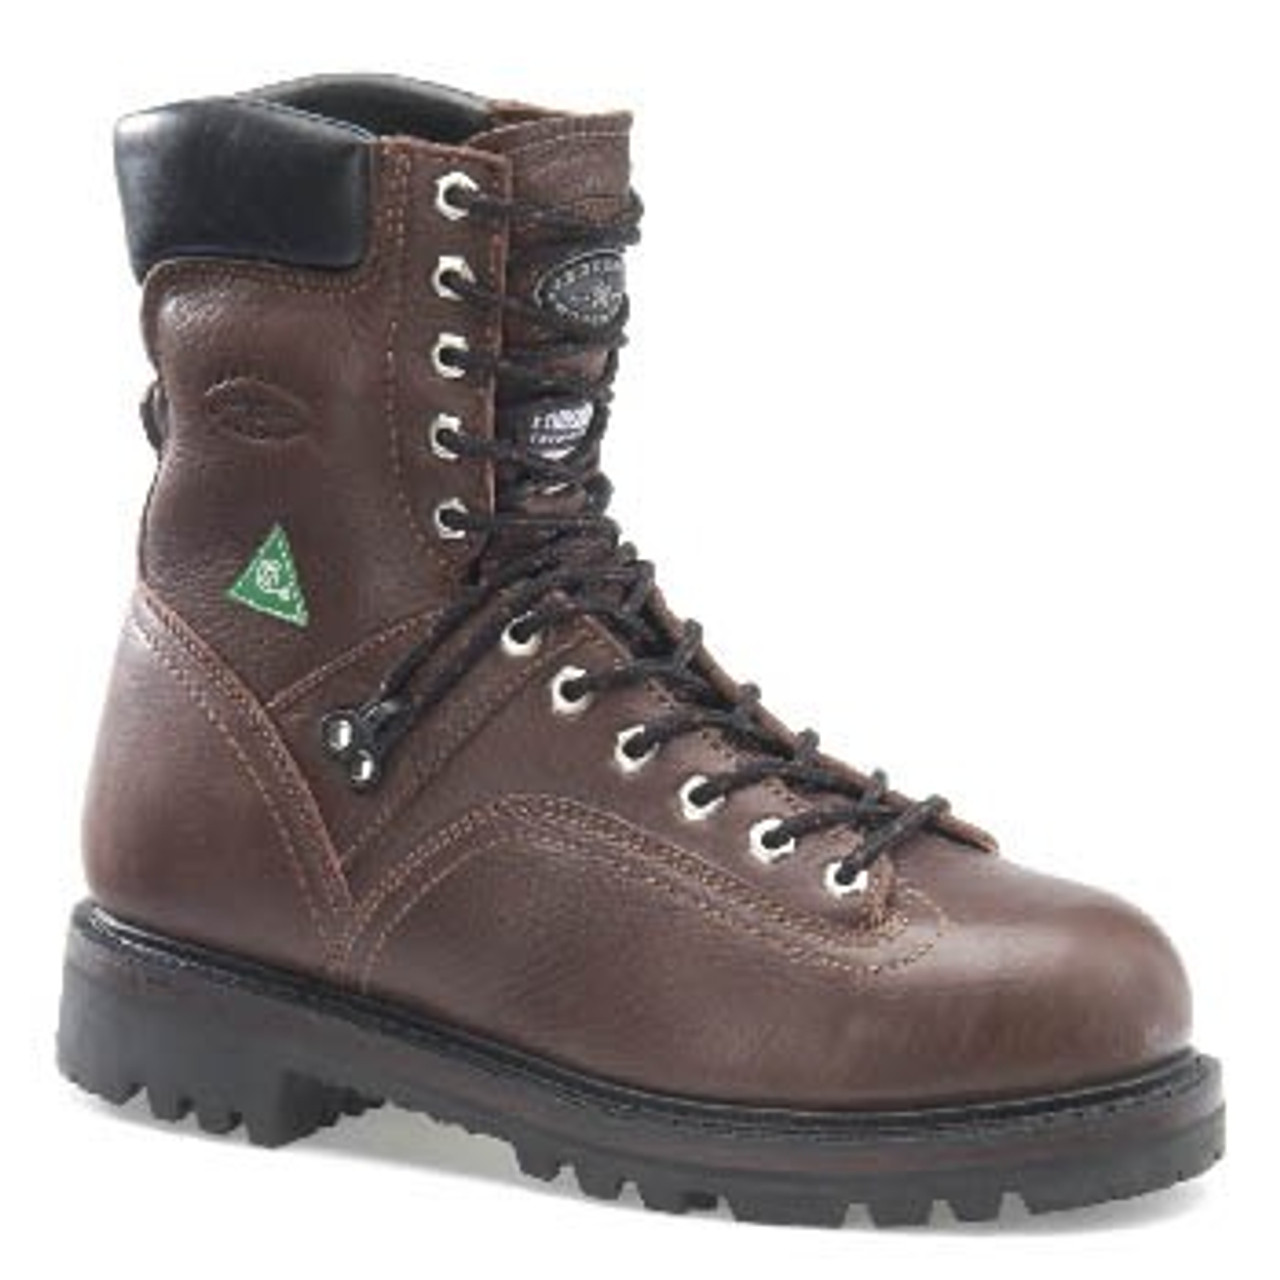 d90809cef27 JB Goodhue 5 Star General Safety Boot